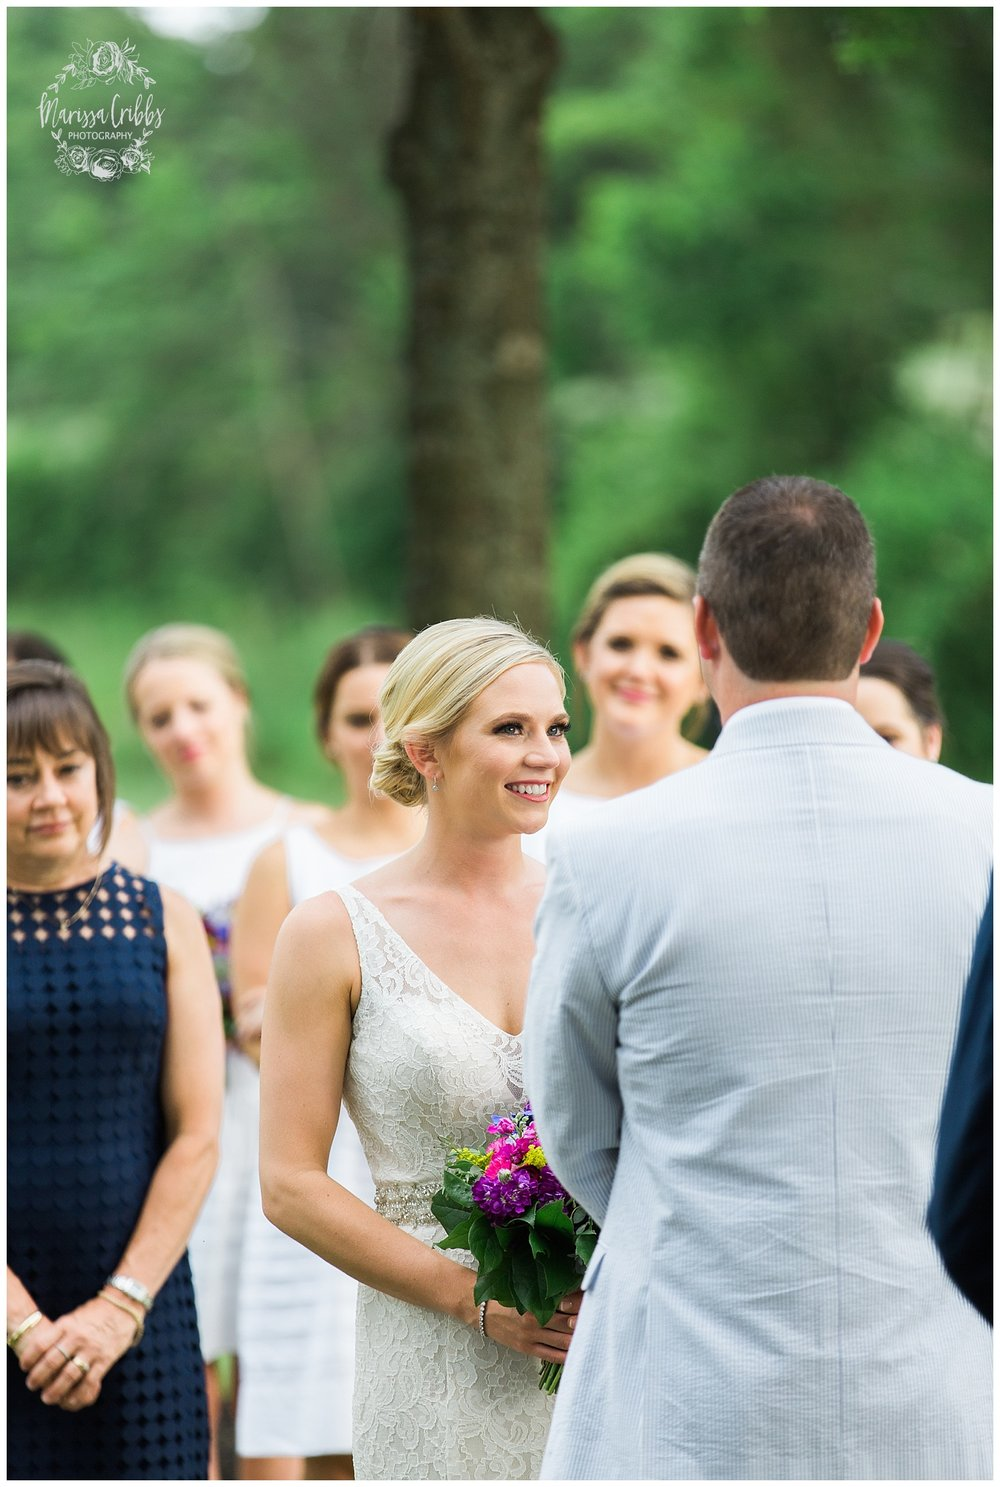 ALLISON & KEVIN WEDDING AT ST ANDREWS GOLF COURSE | MARISSA CRIBBS PHOTOGRAPHY_1751.jpg